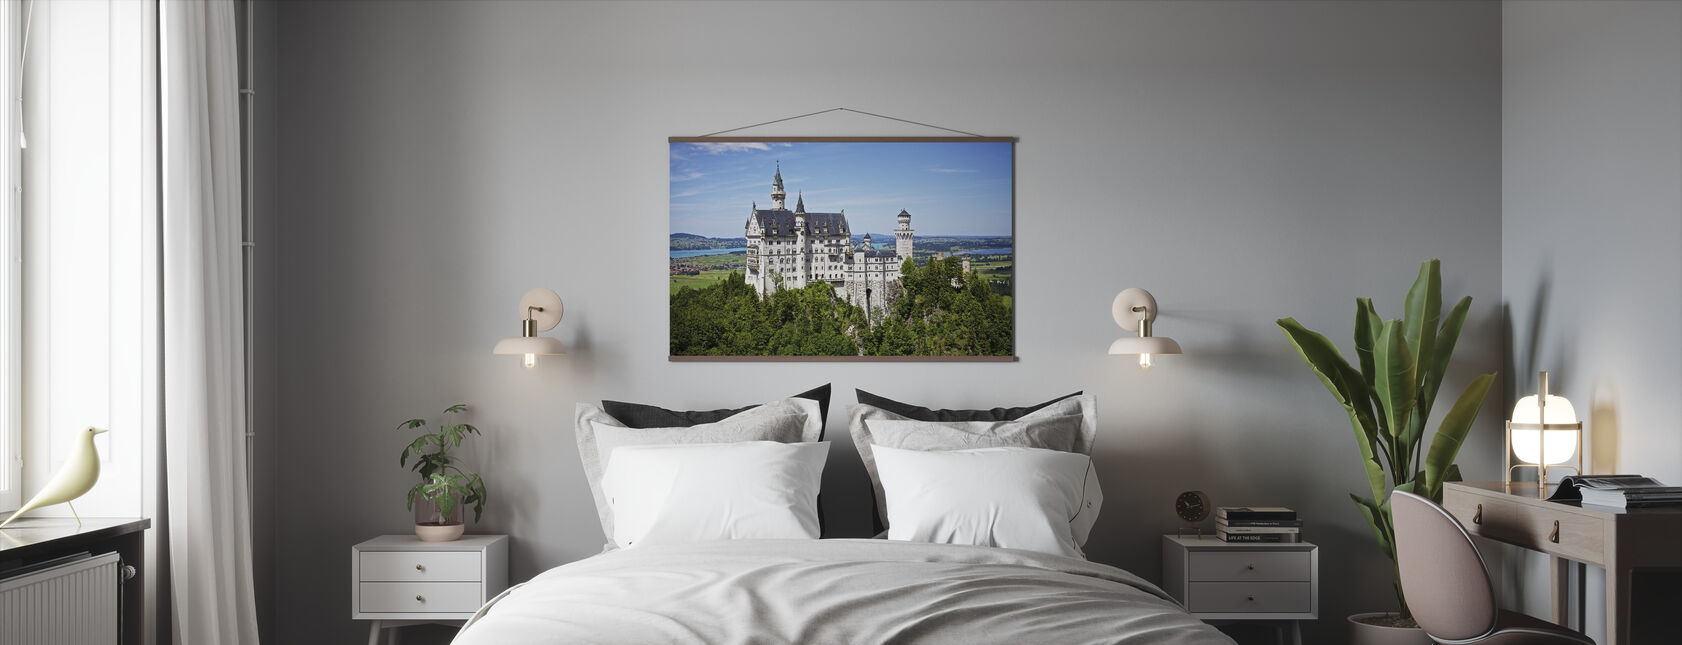 Neuschwanstein Disney Castle - Poster - Bedroom